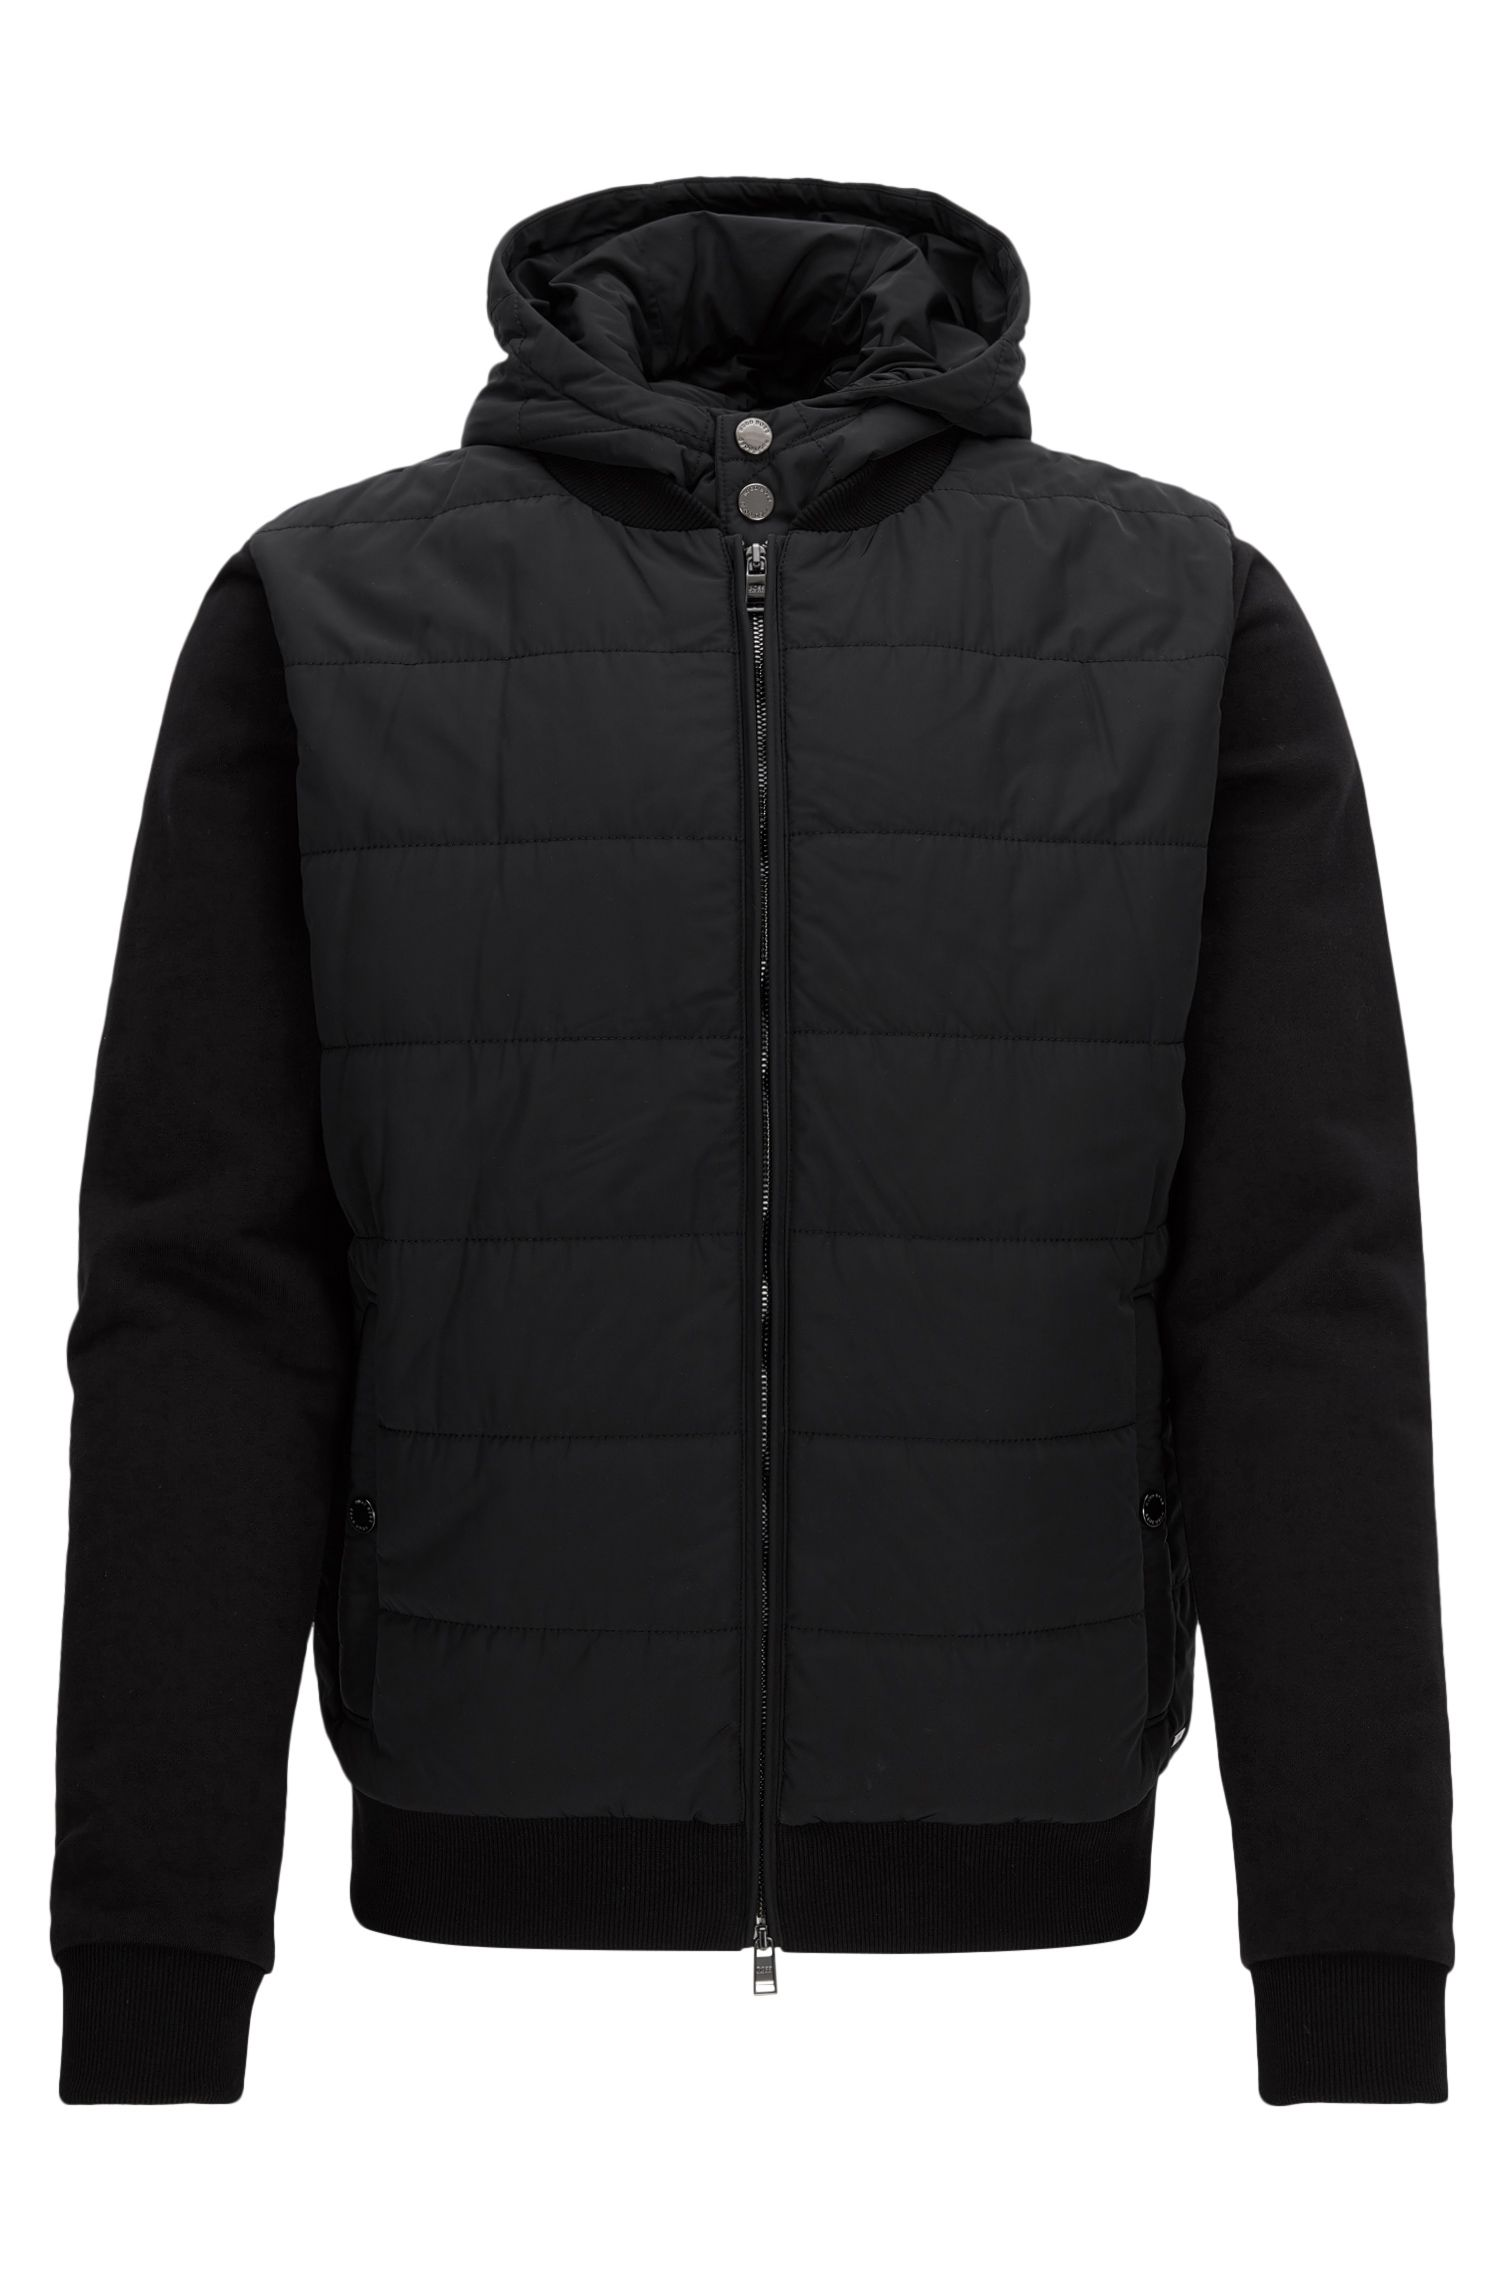 Regular-fit hooded jacket in technical fabric and French terry